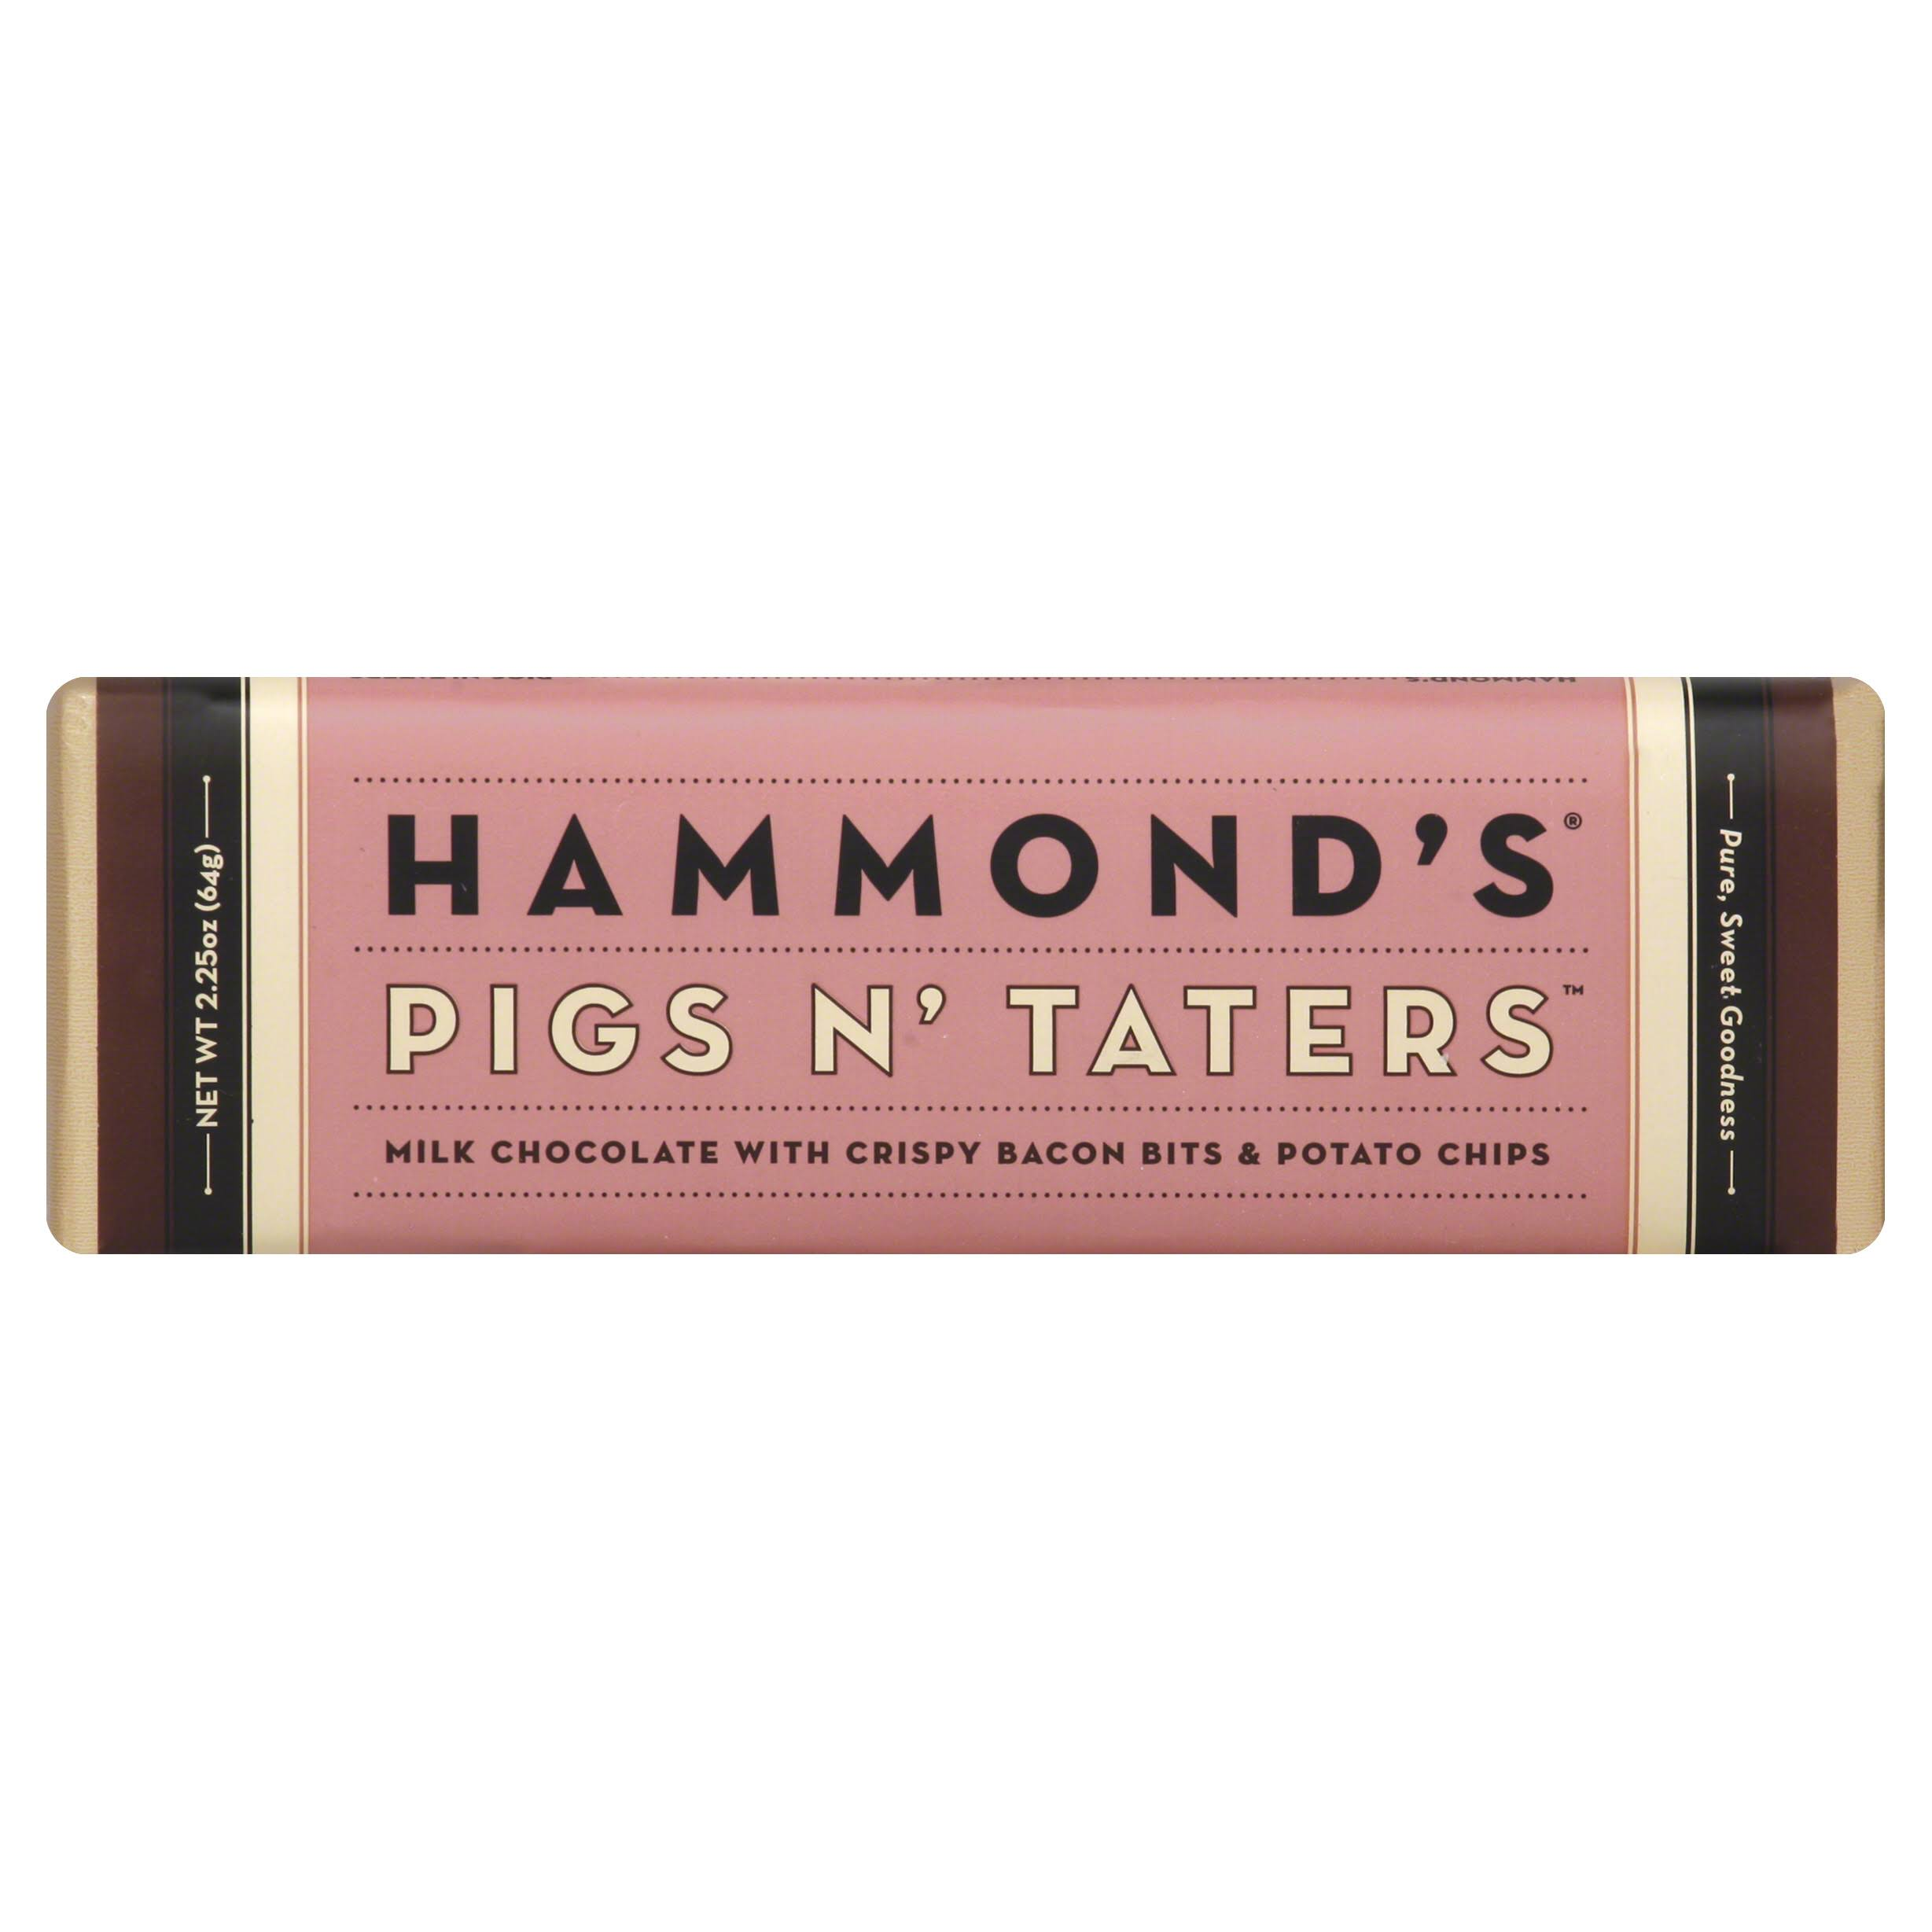 Hammonds Pigs N' Taters - Milk Chocolate, 2.25oz